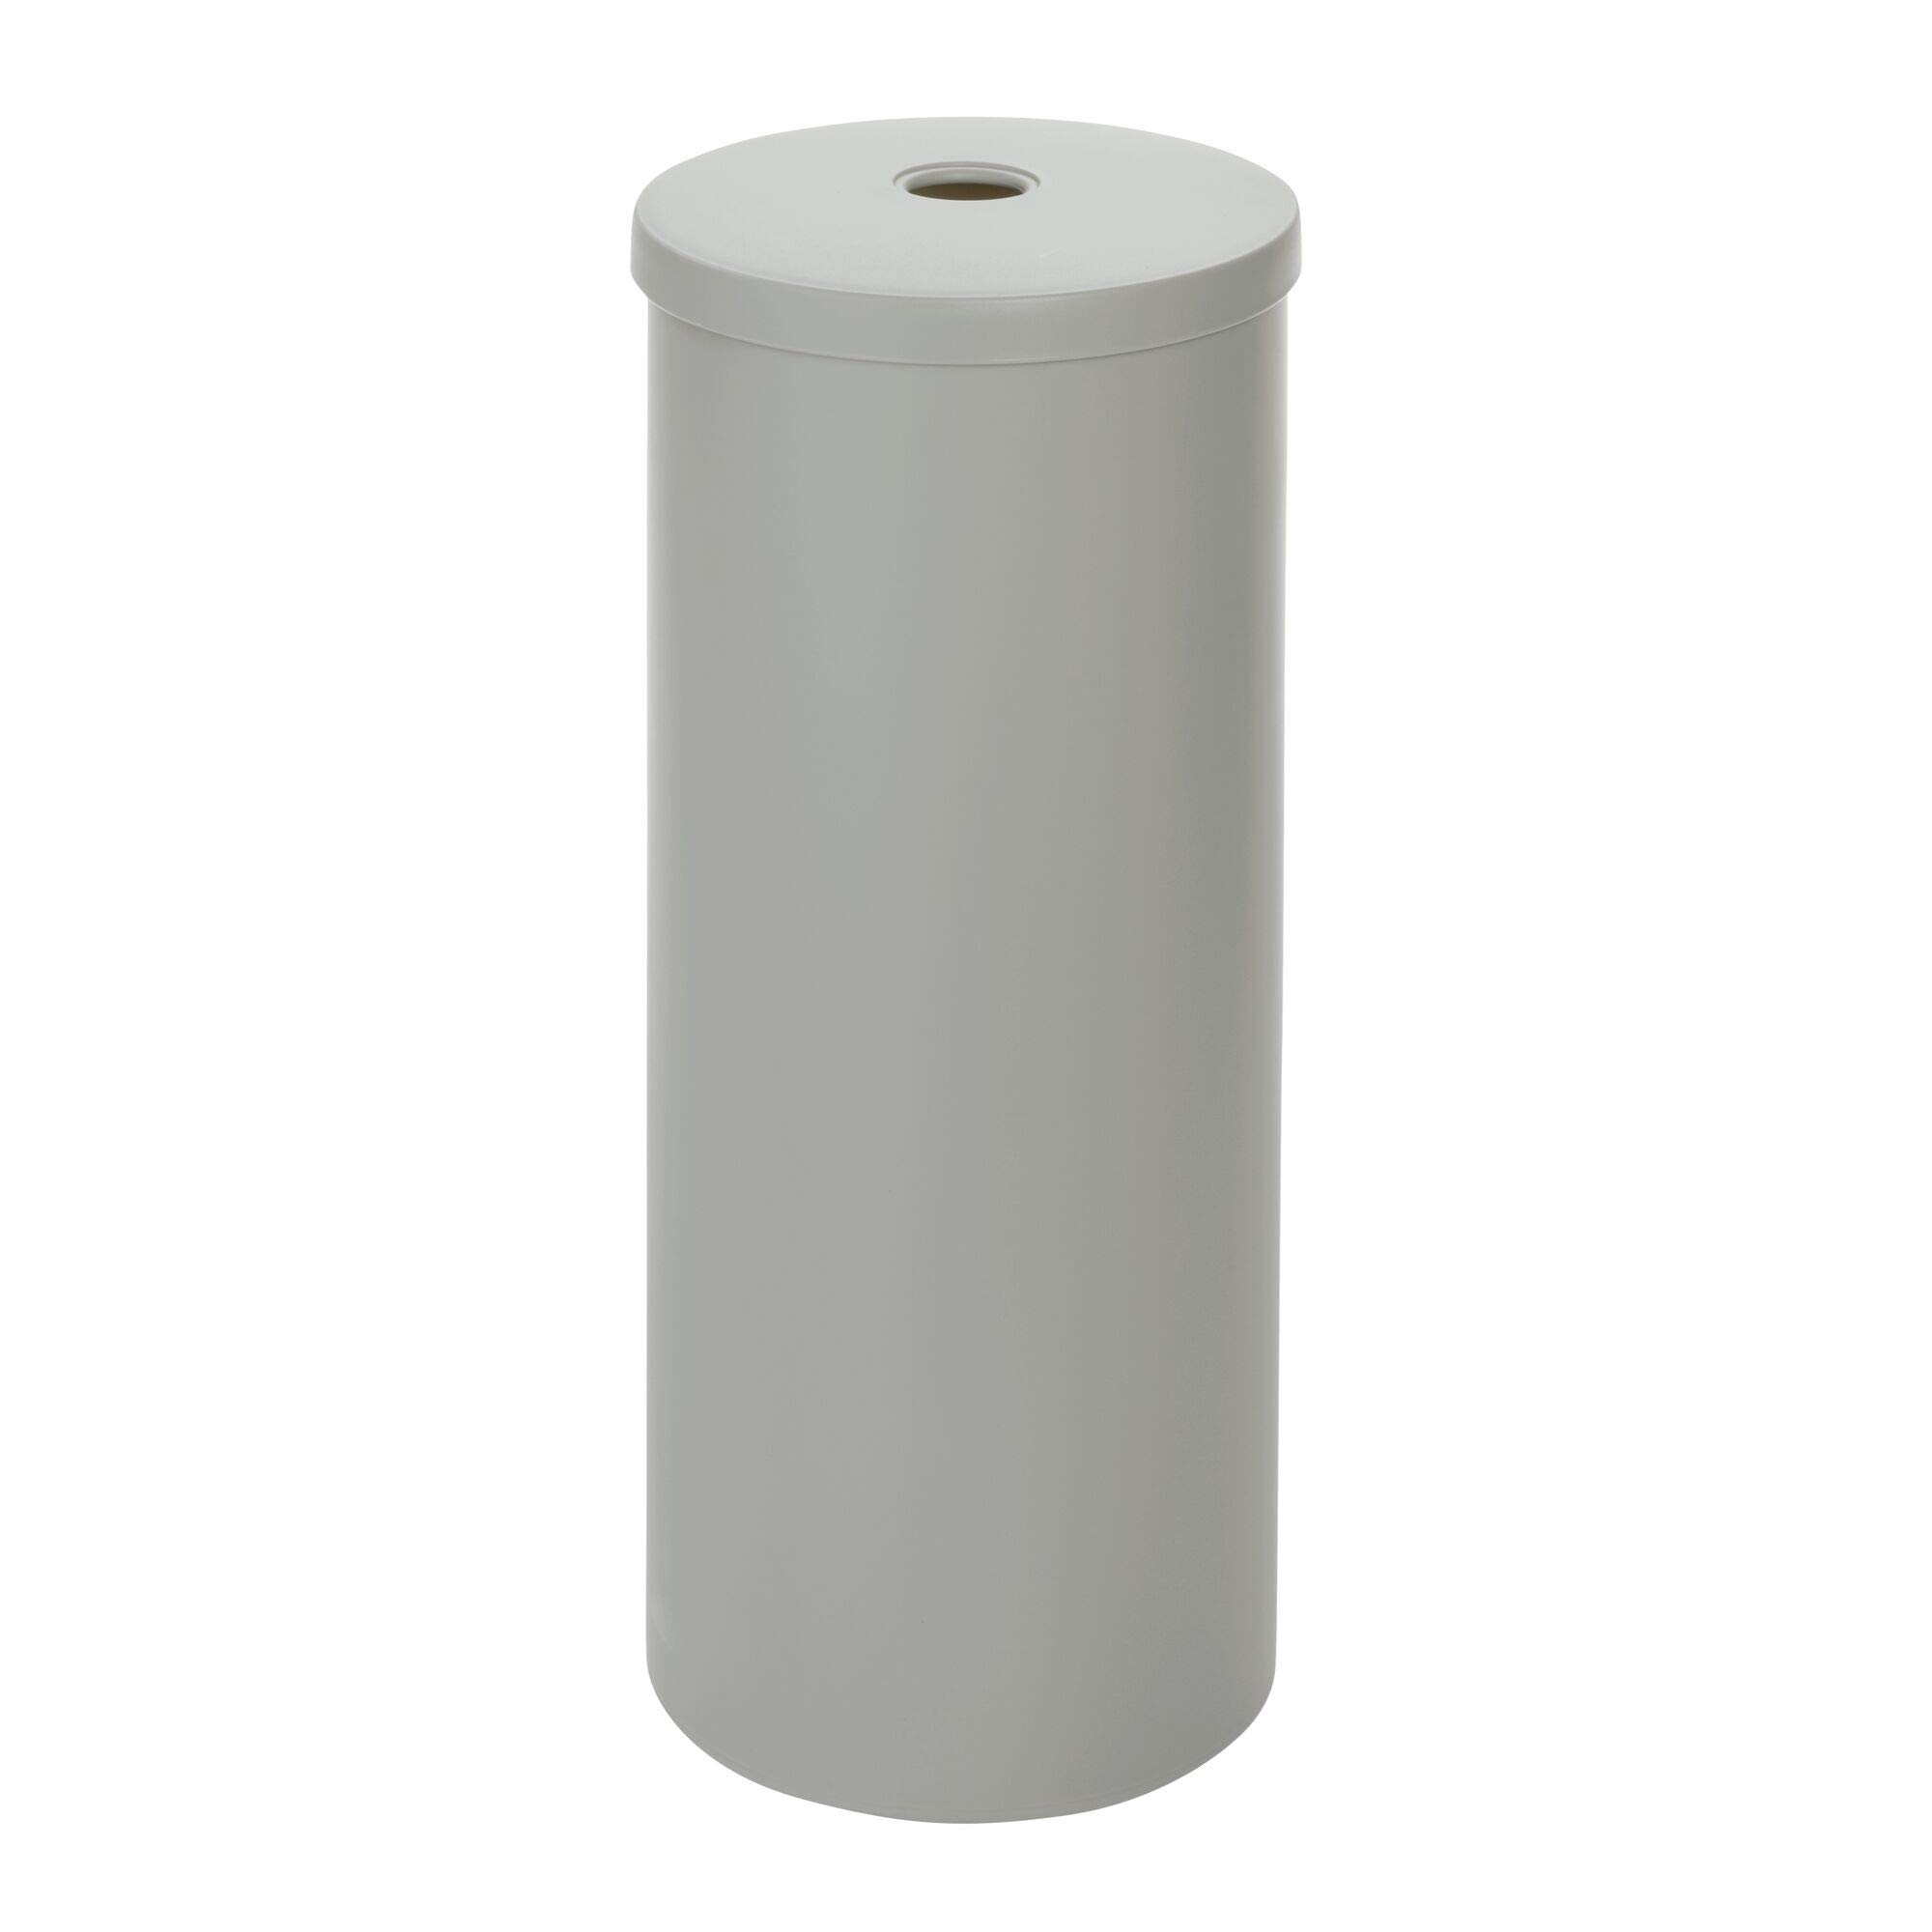 iDesign Cade Toilet Paper Tissue Roll Reserve Canister Organizer for Master, Guest, Kid's, Office Bathroom or Closet, Matte Gray